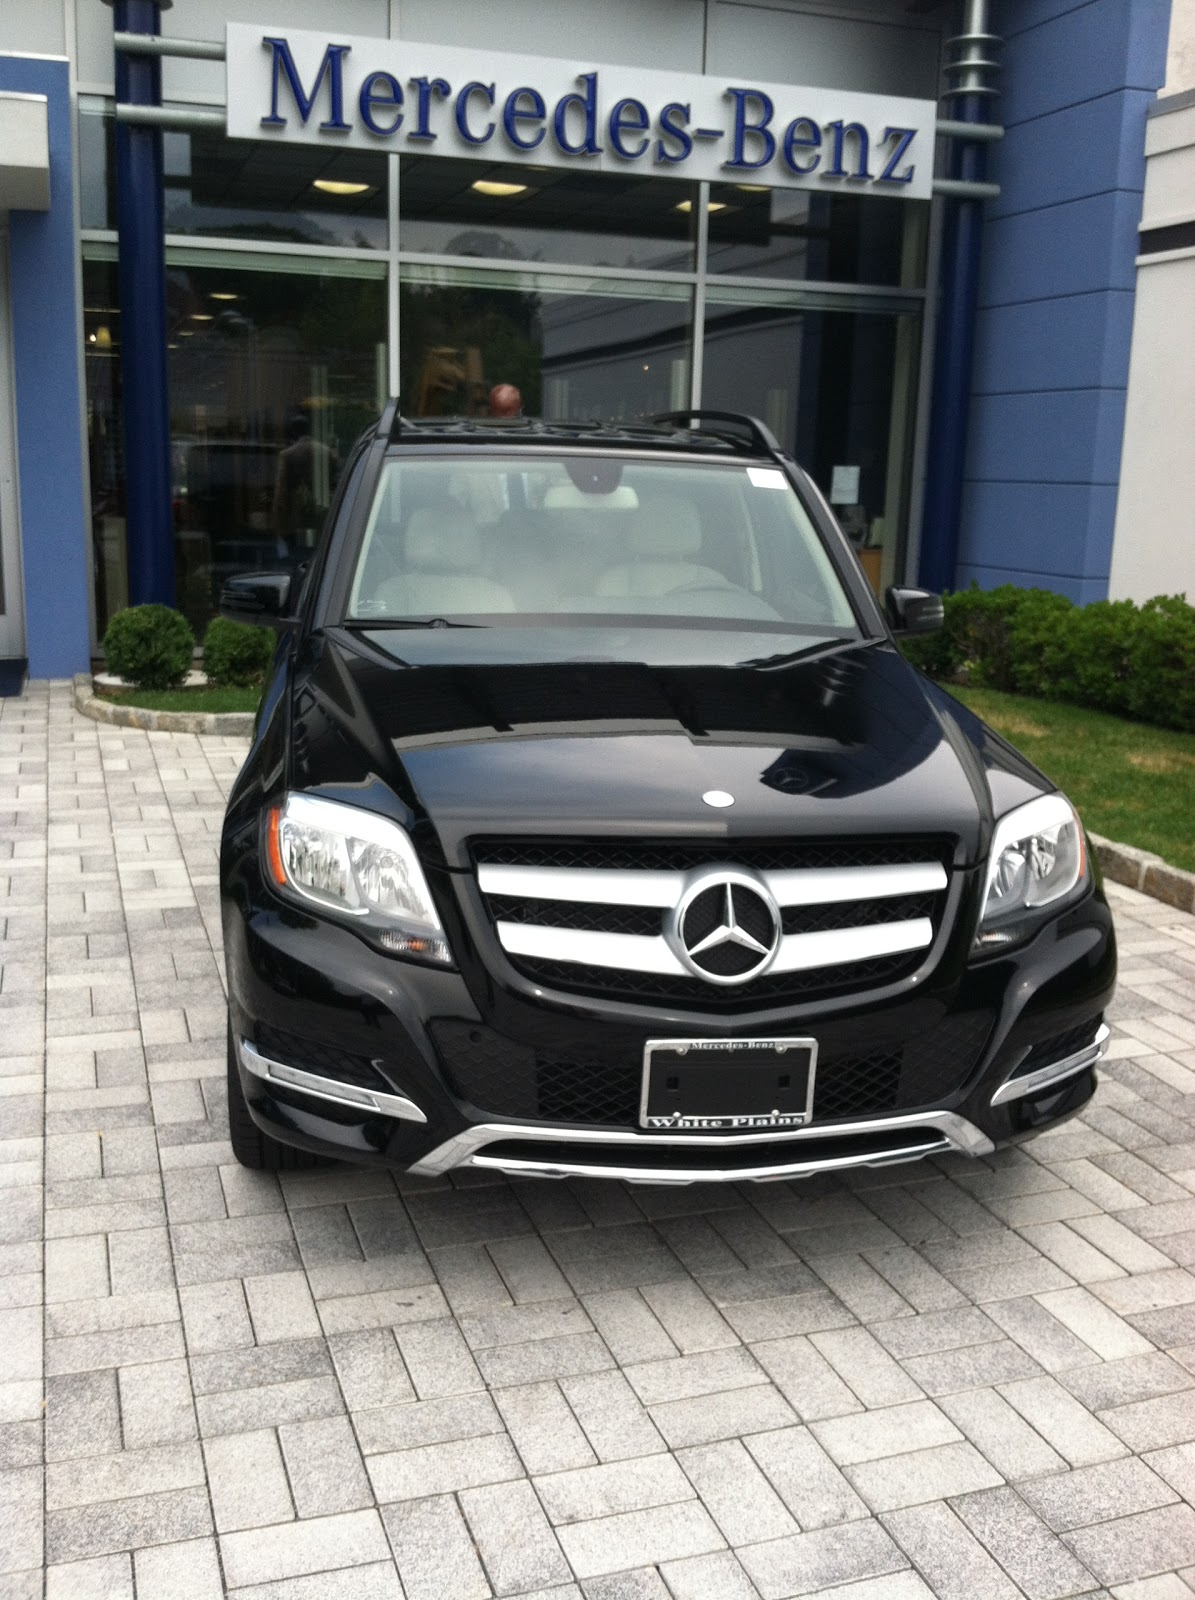 Mercedes Benz Of White Plains Is Happy To Announce That We Have Just  Received Our First Shipment Of 2013 Mercedes Benz GLK 350u0027s.